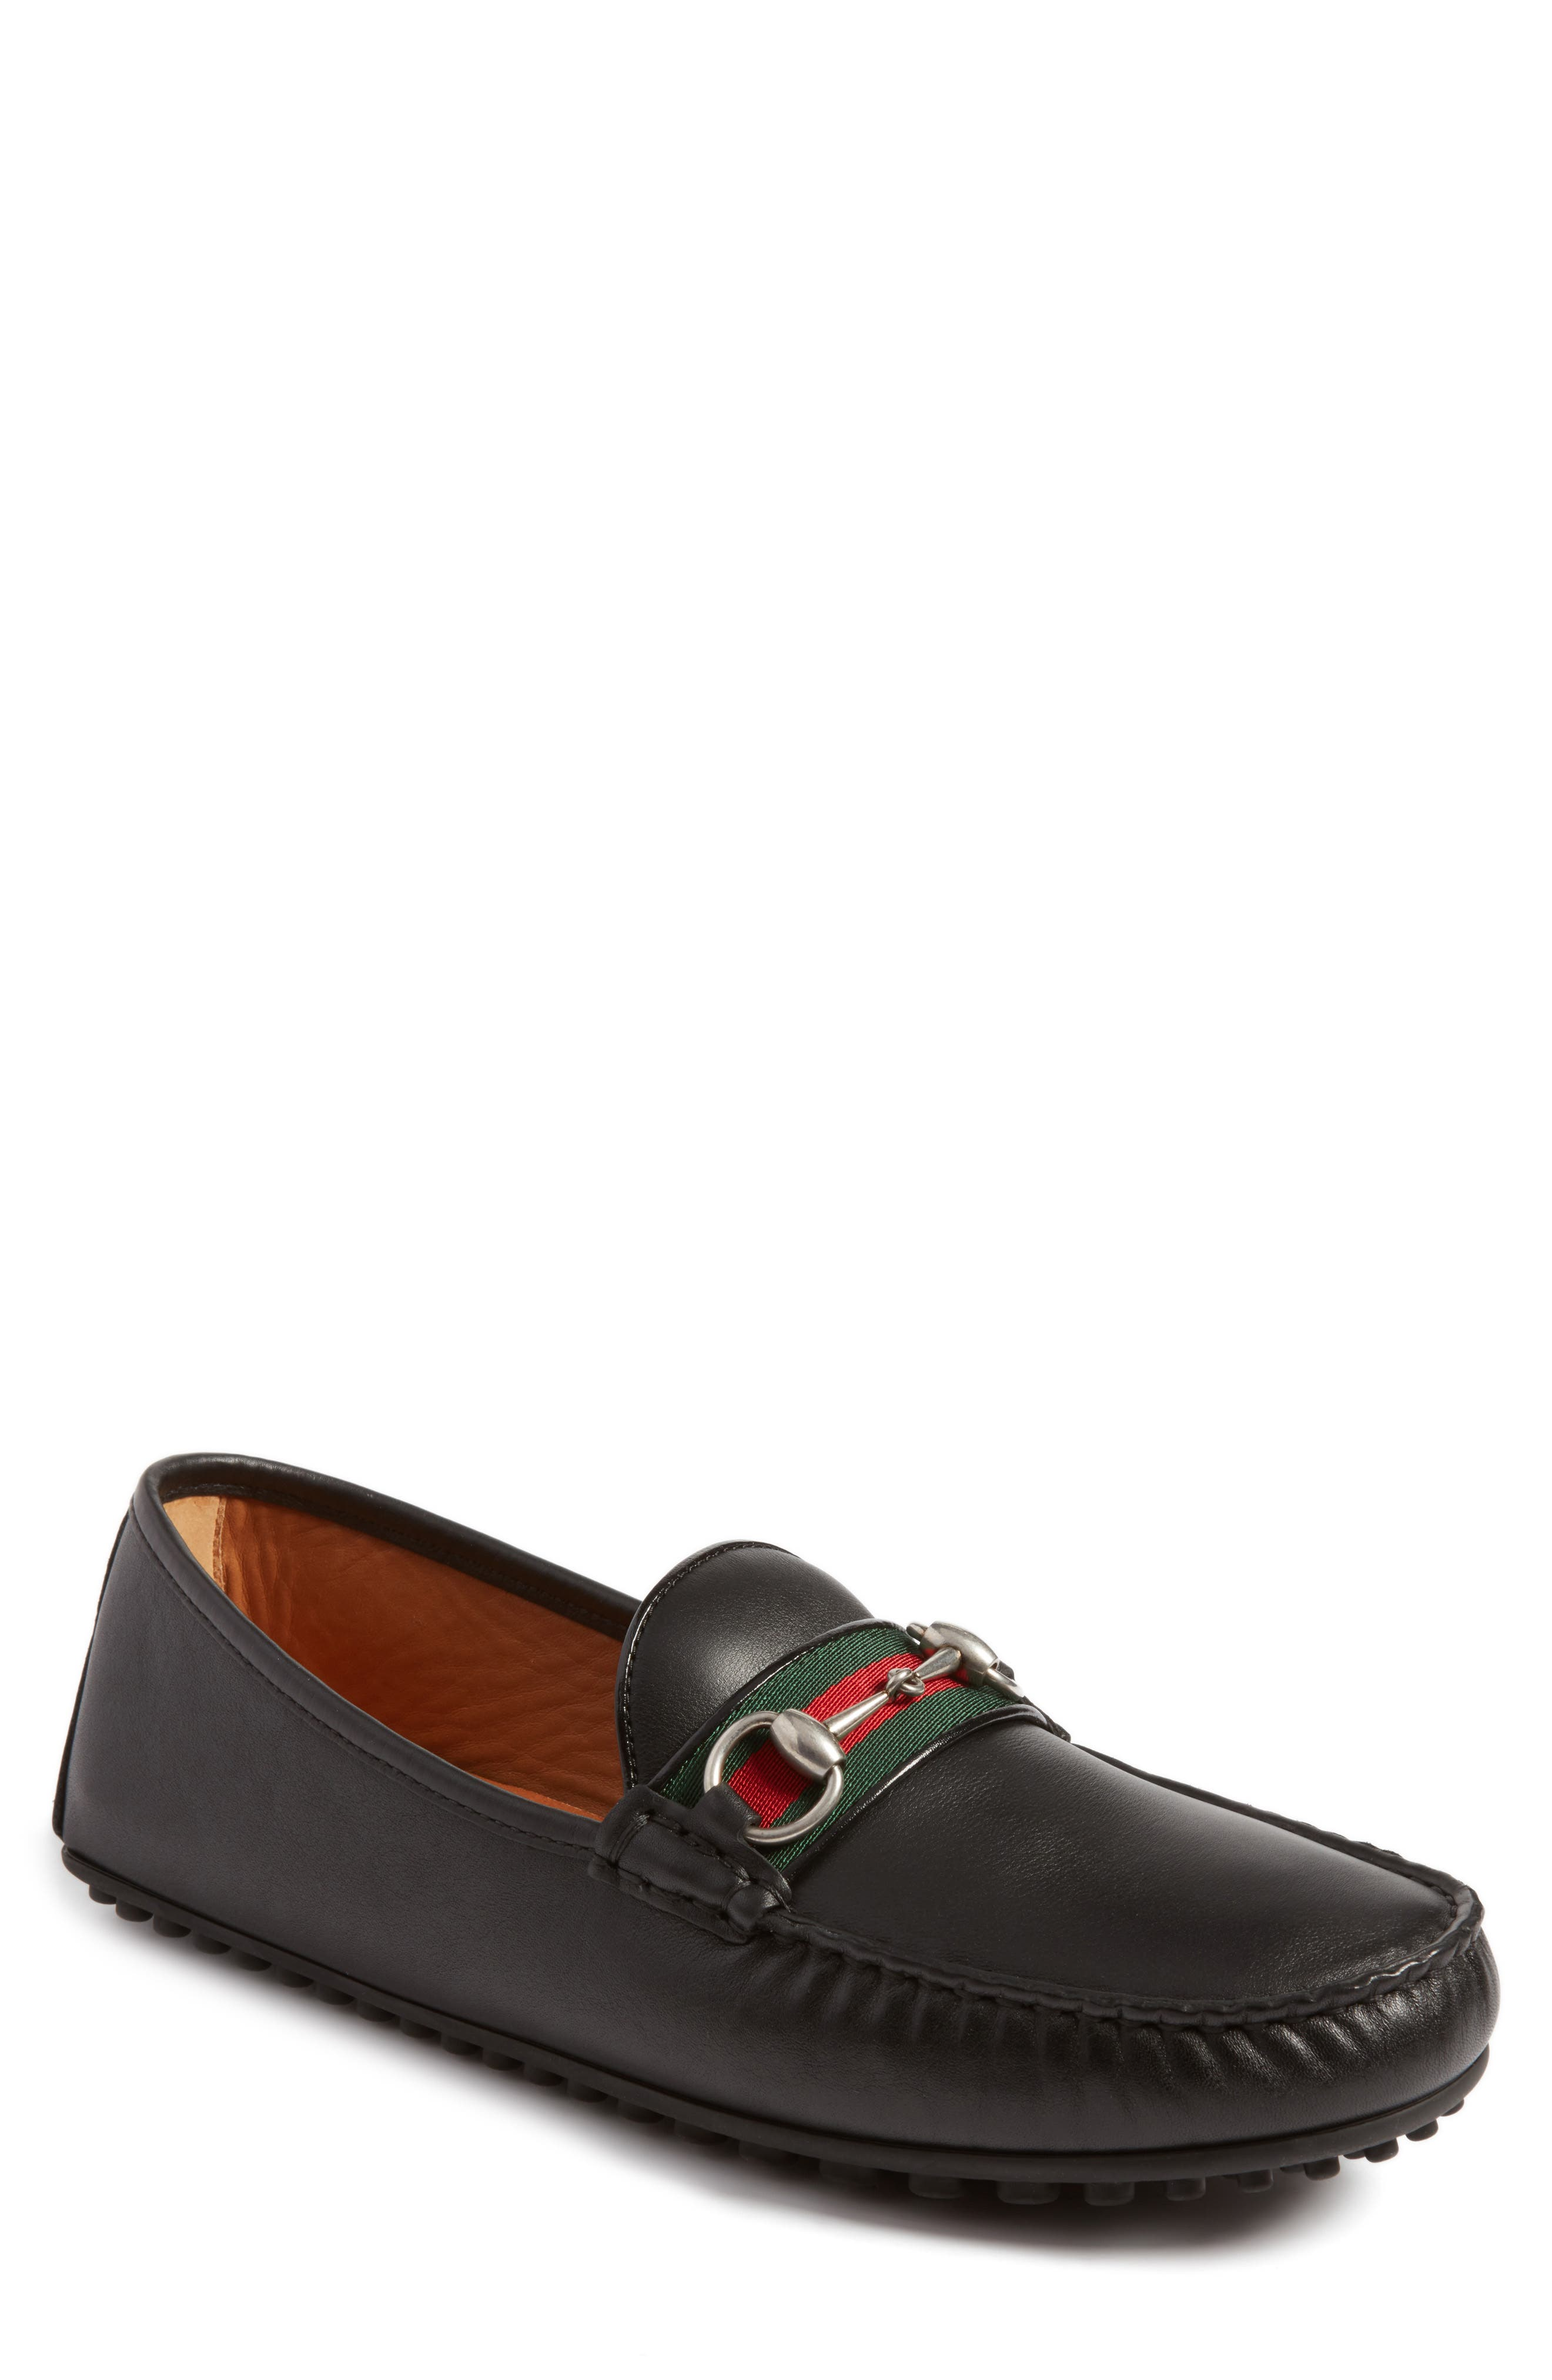 Bit Loafer, Main, color, NERO LEATHER